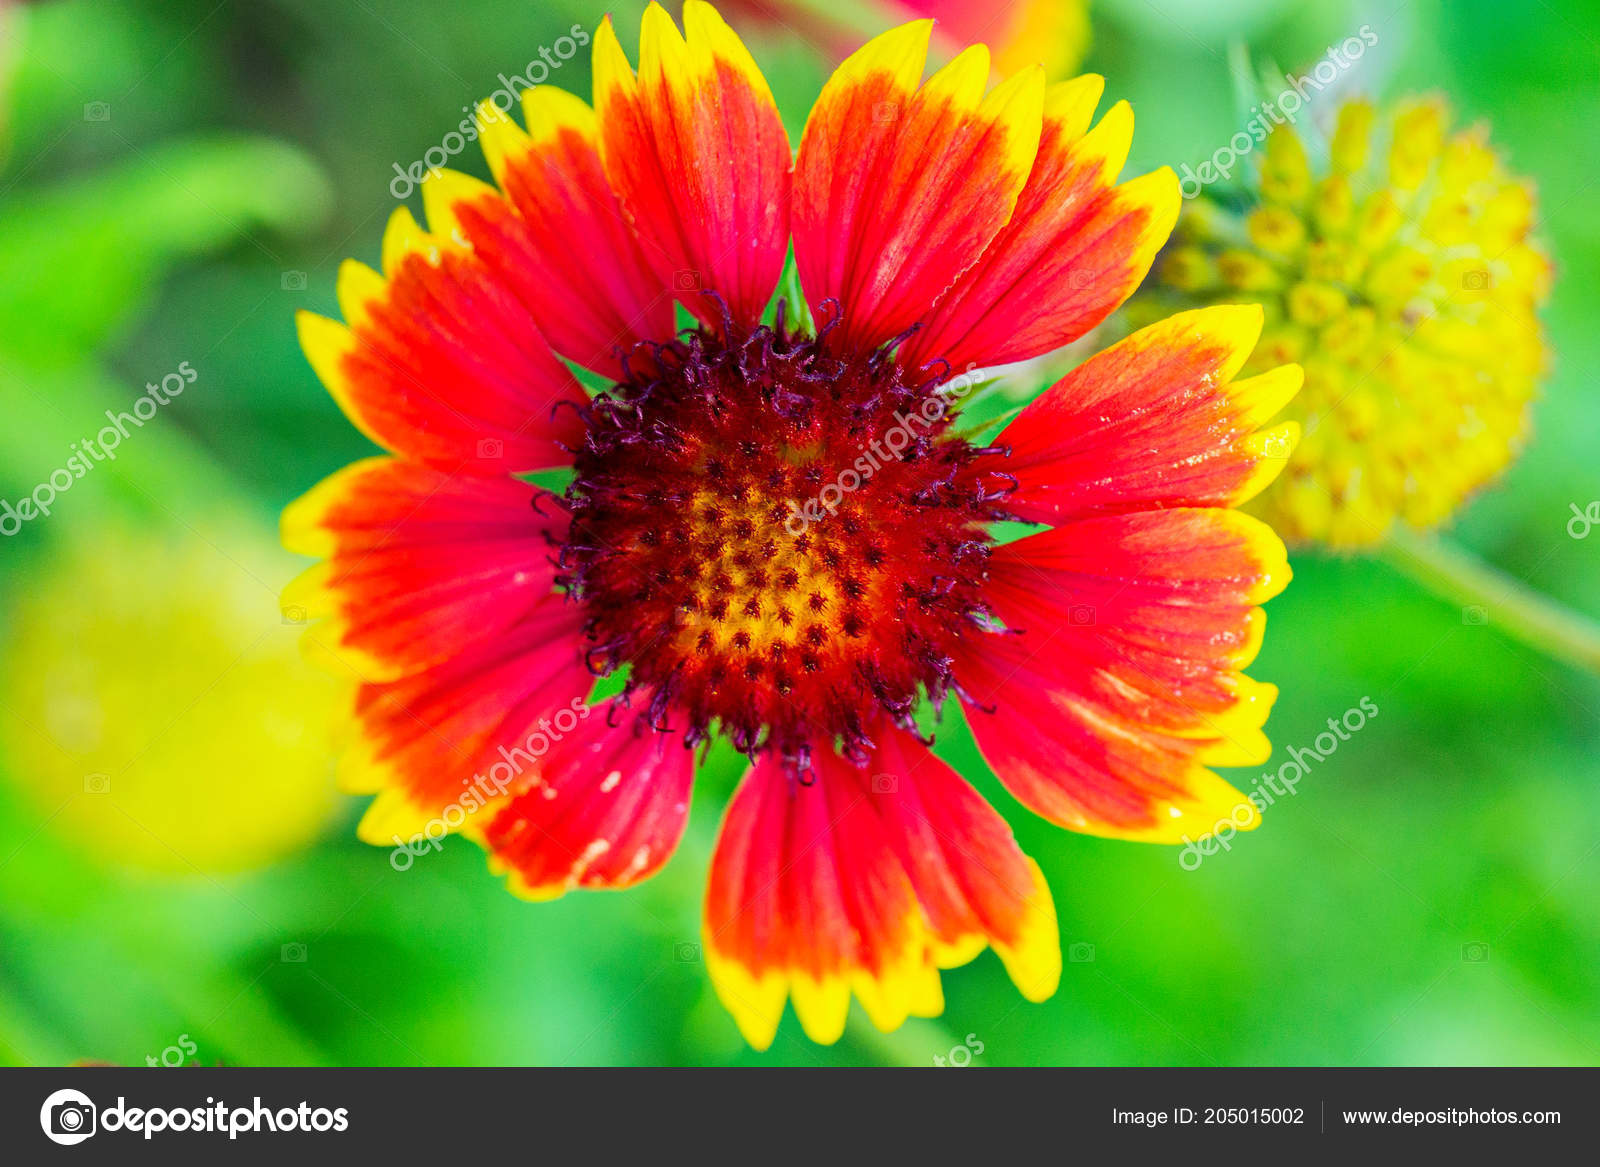 Beautiful Flower With Red Petals And Yellow Tips Photographed Close